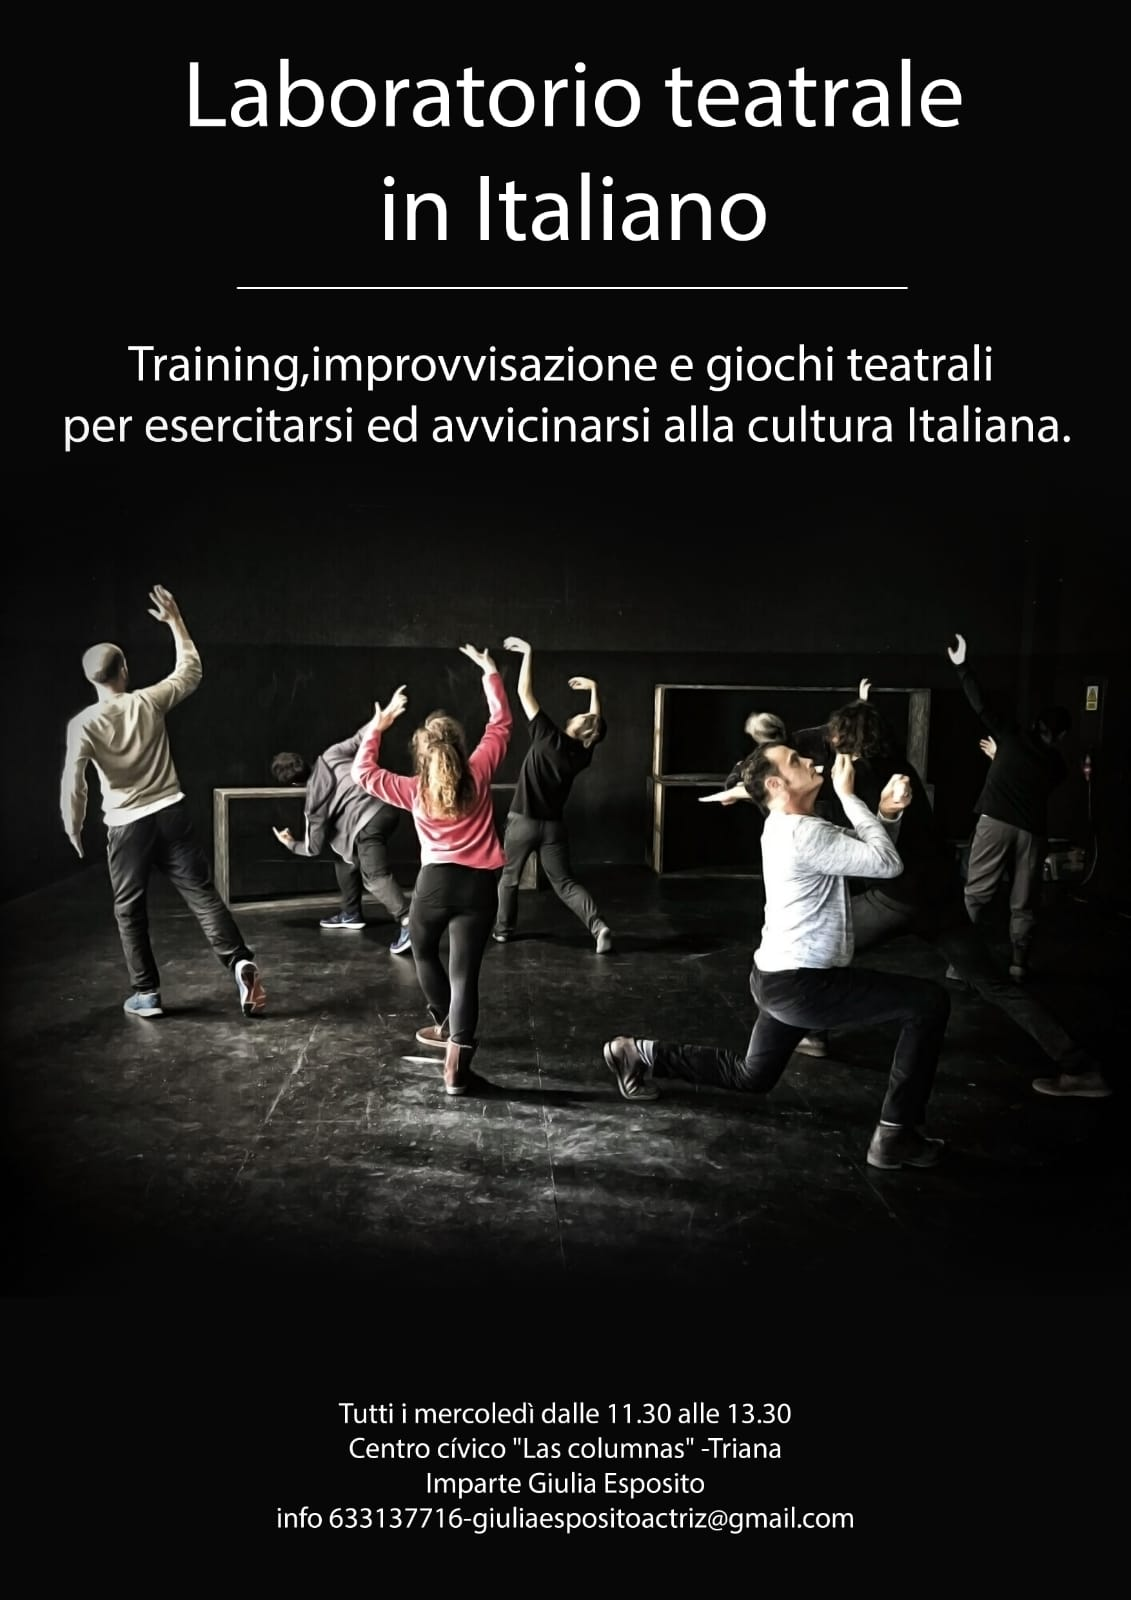 Laboratorio teatrale in italiano